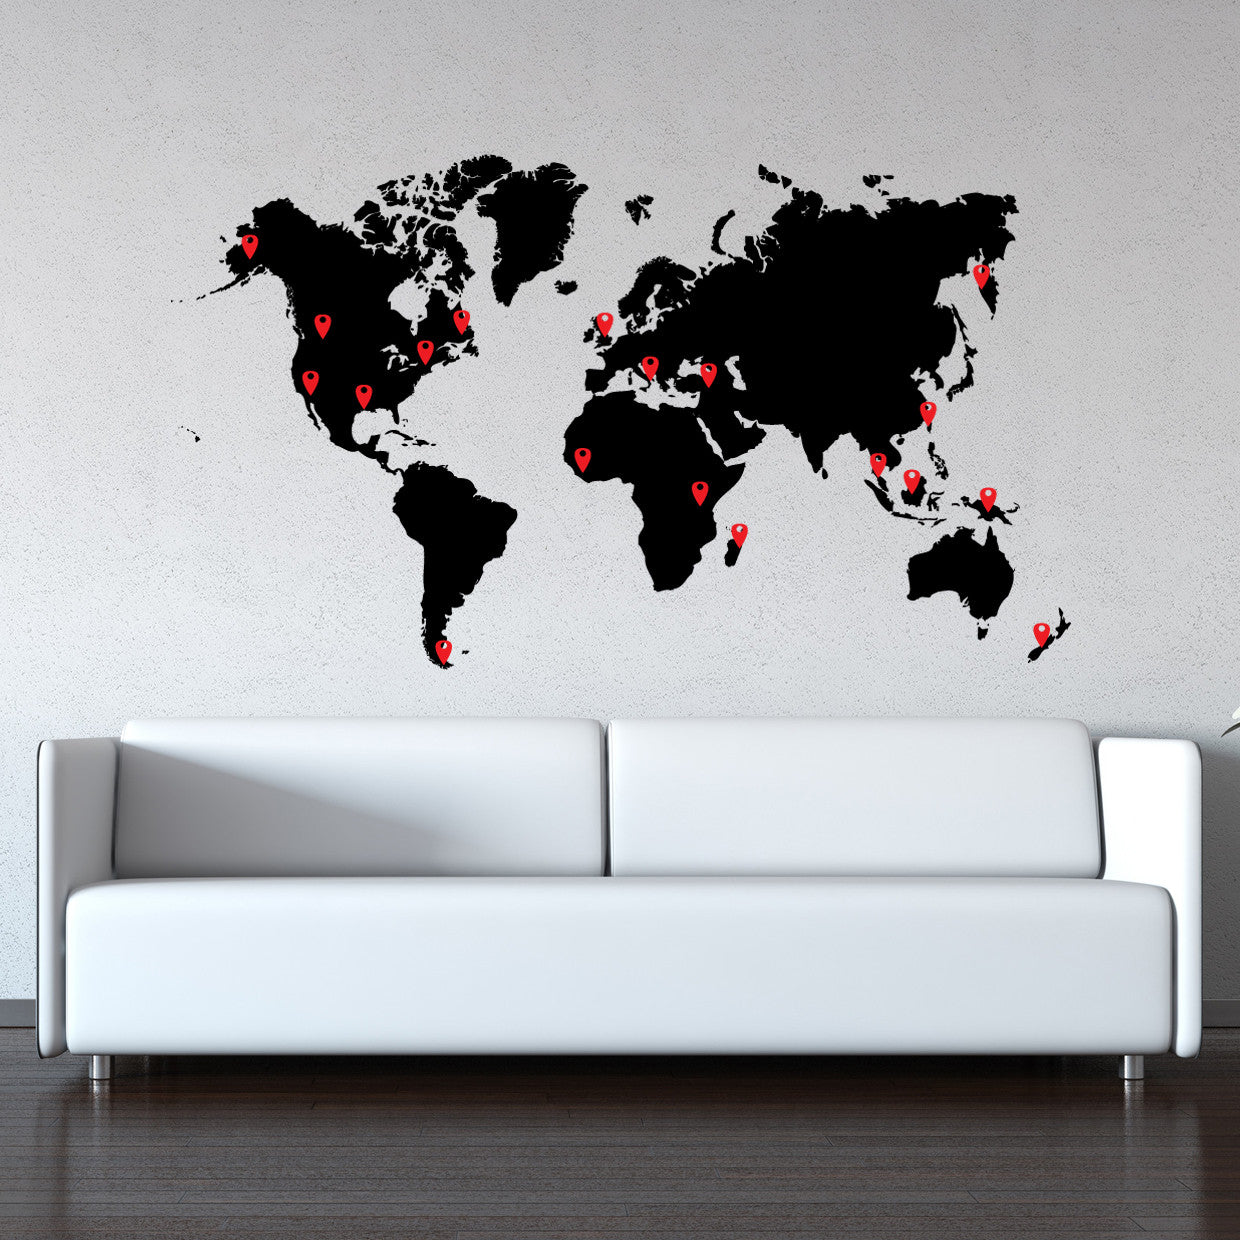 World map vinyl wall decal world map with pins world map pin drops decal 873 gumiabroncs Choice Image